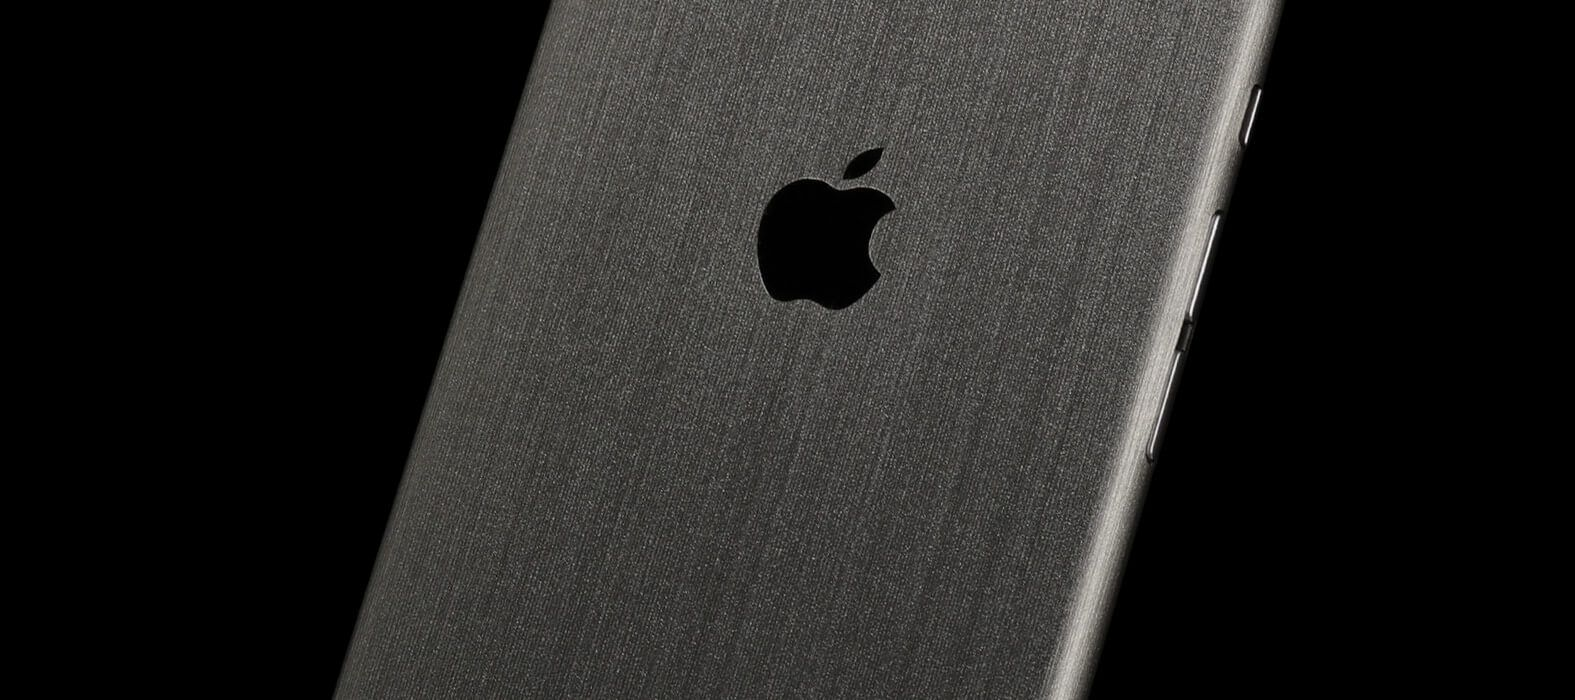 iPhone 6 Plus Skins, Wraps & decals - brushed titanium